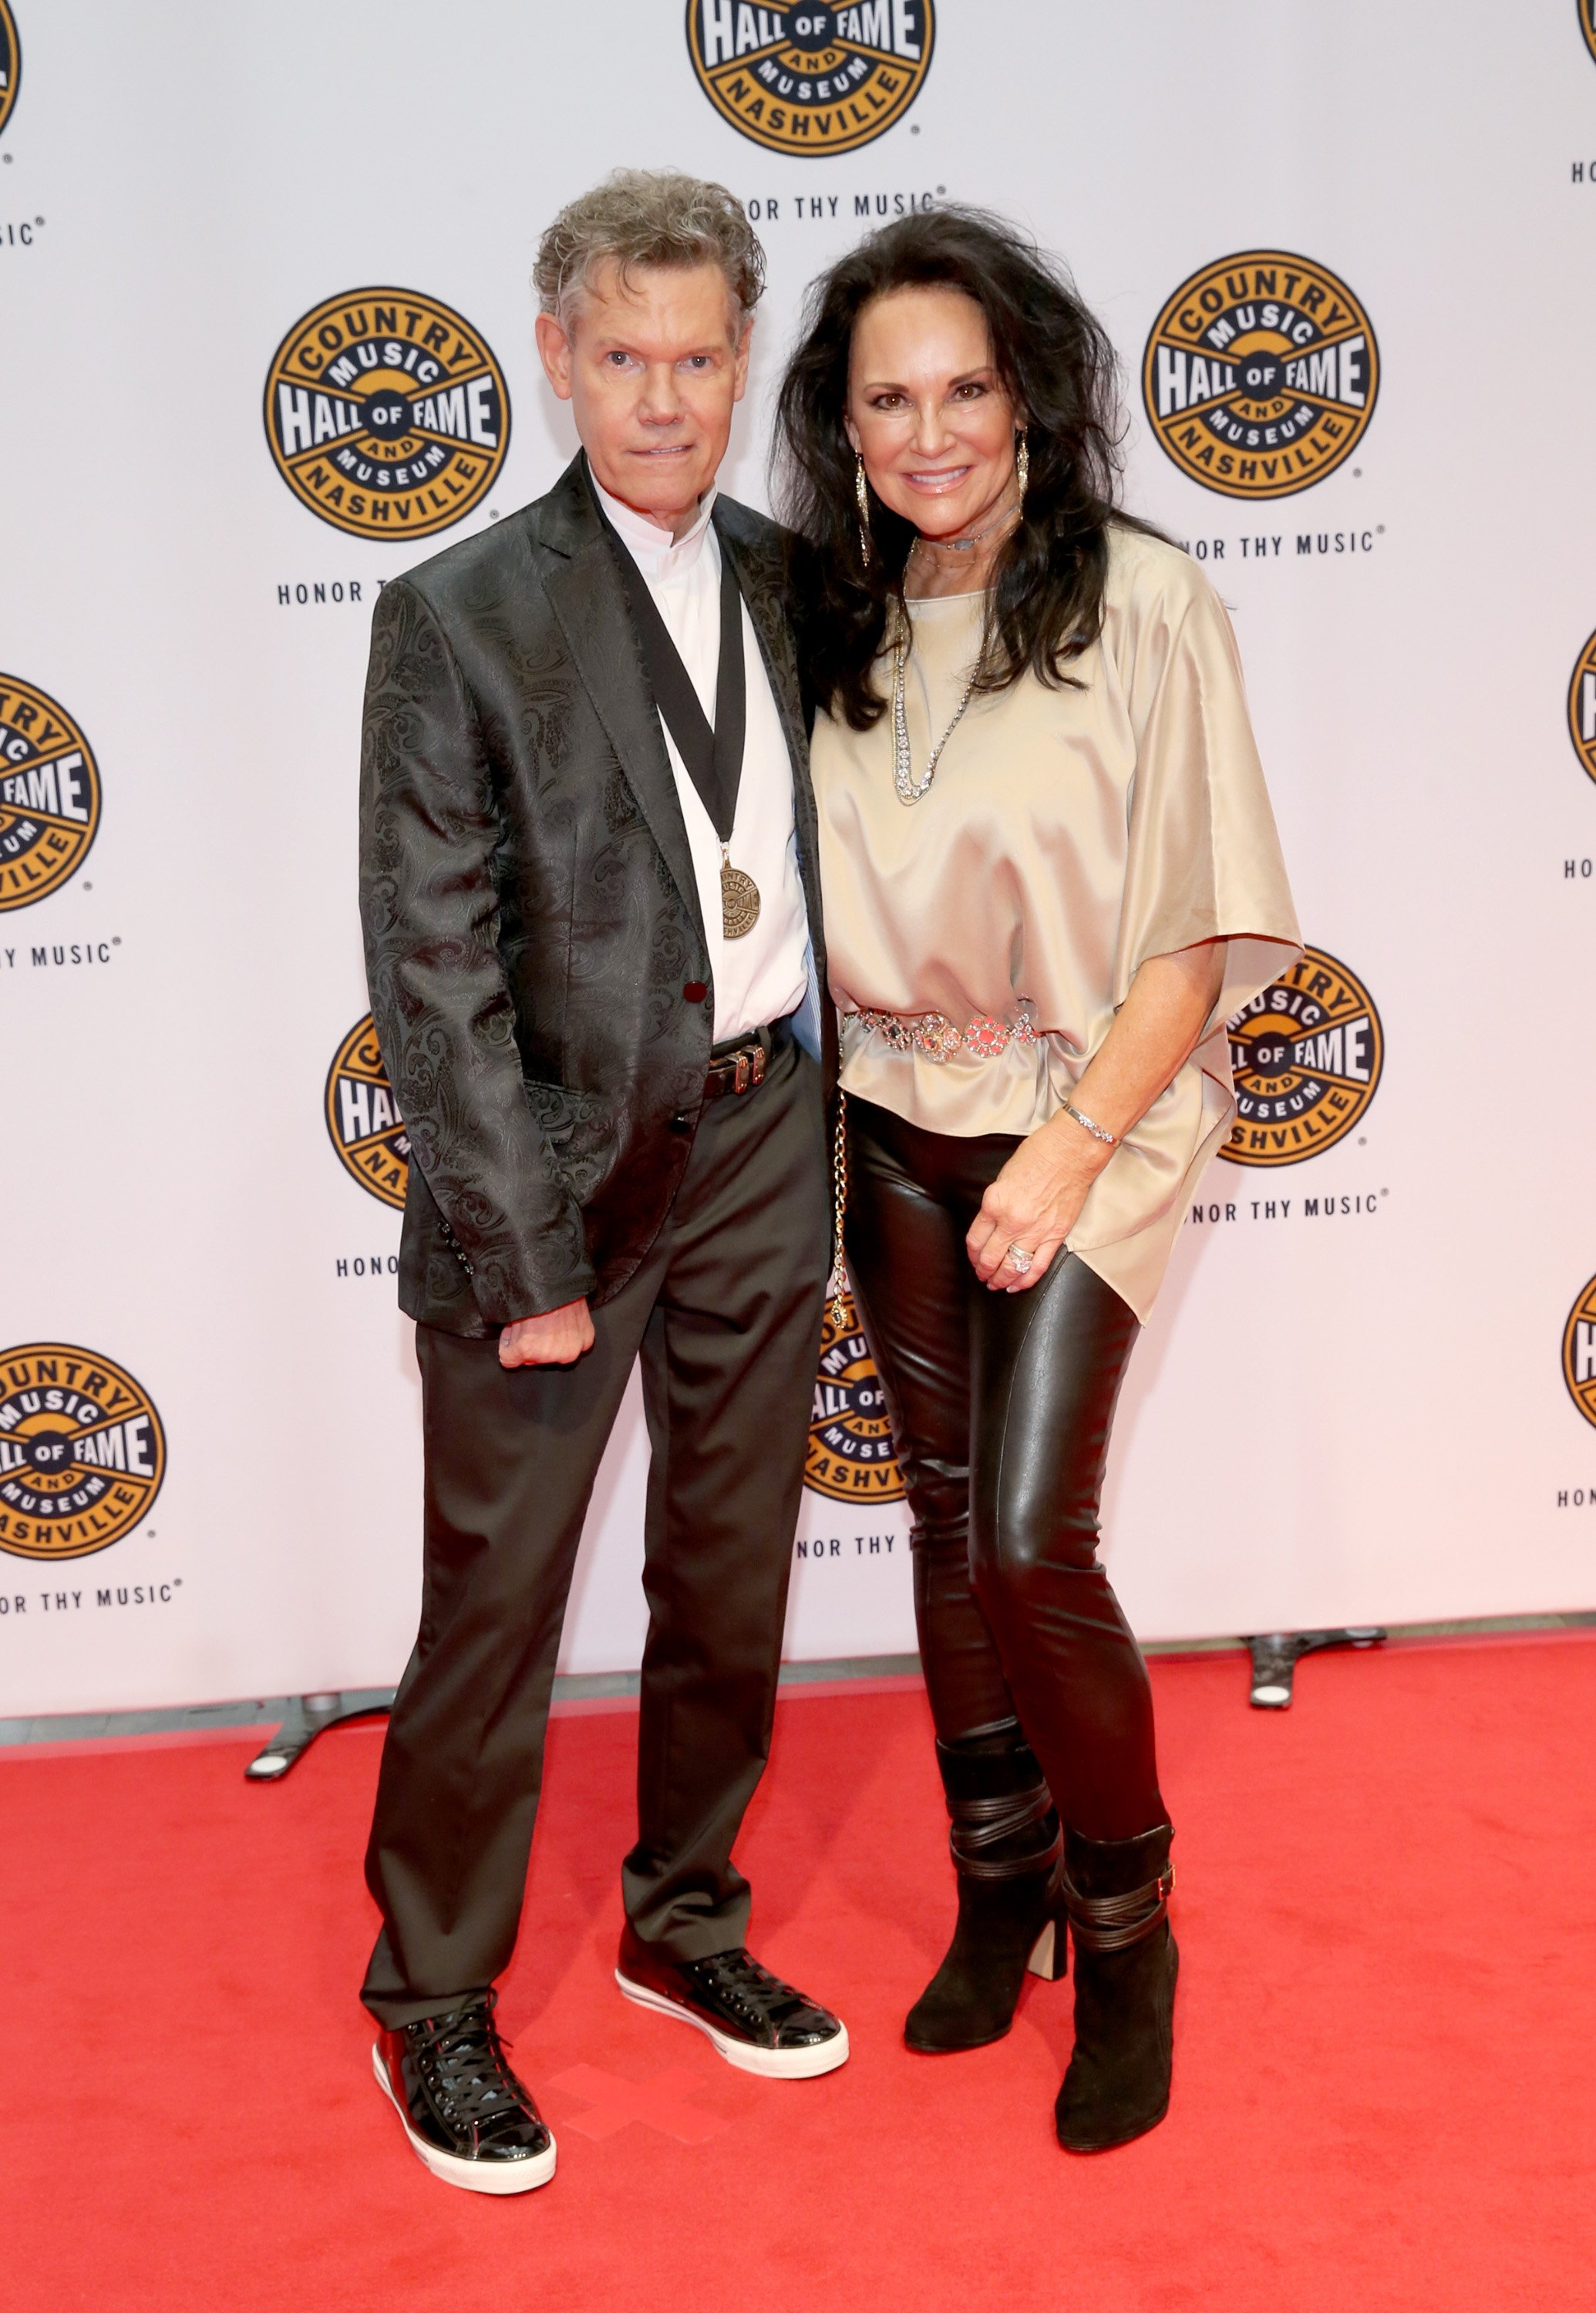 Randy Travis and Mary Travis attend the Medallion Ceremony on October 22, 2017, in Nashville, Tennessee.   Source: Getty Image.